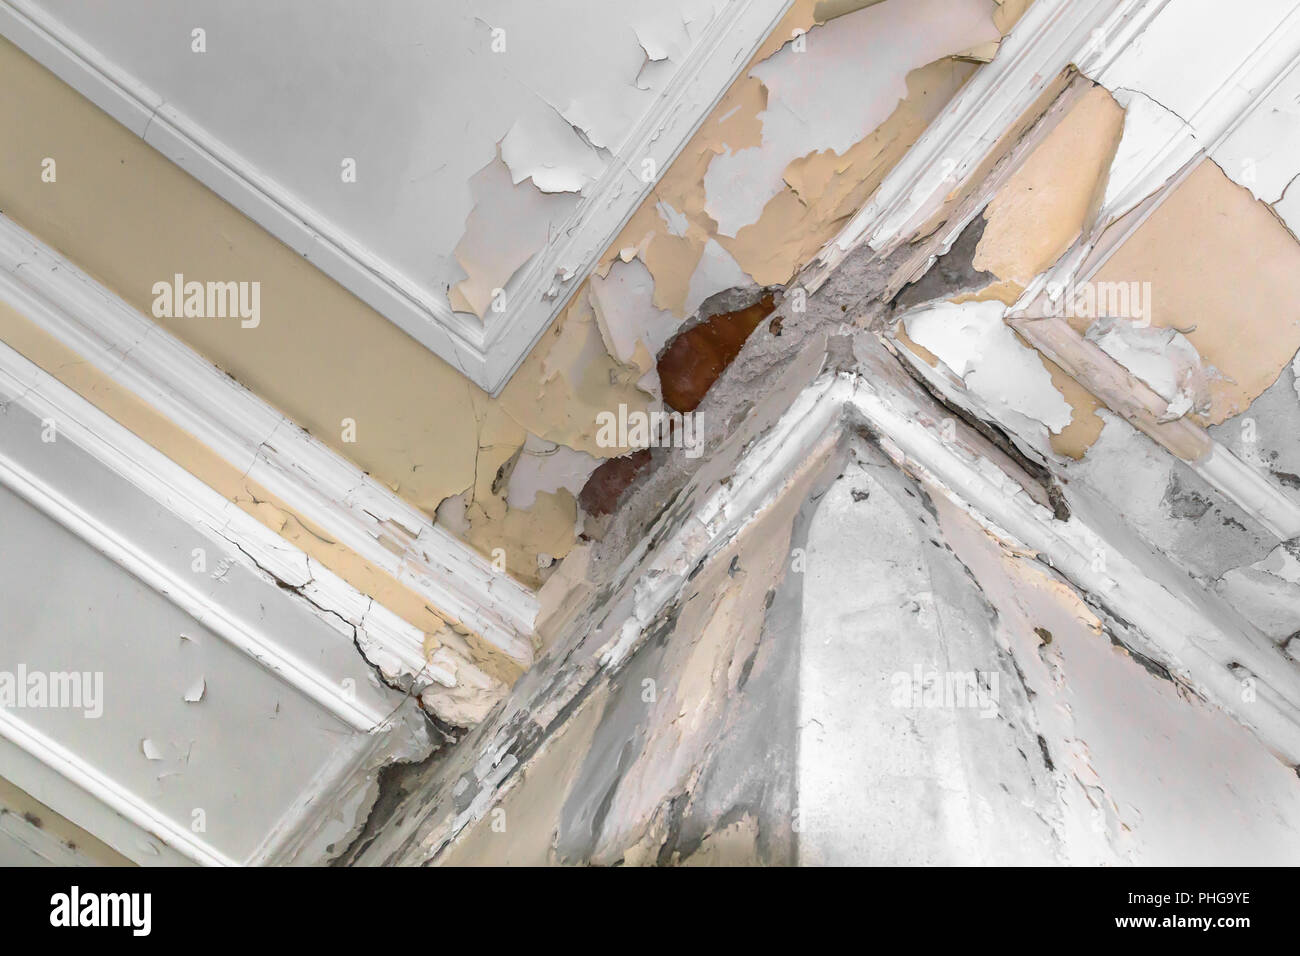 Ceiling and walls damage by humidity - Stock Image